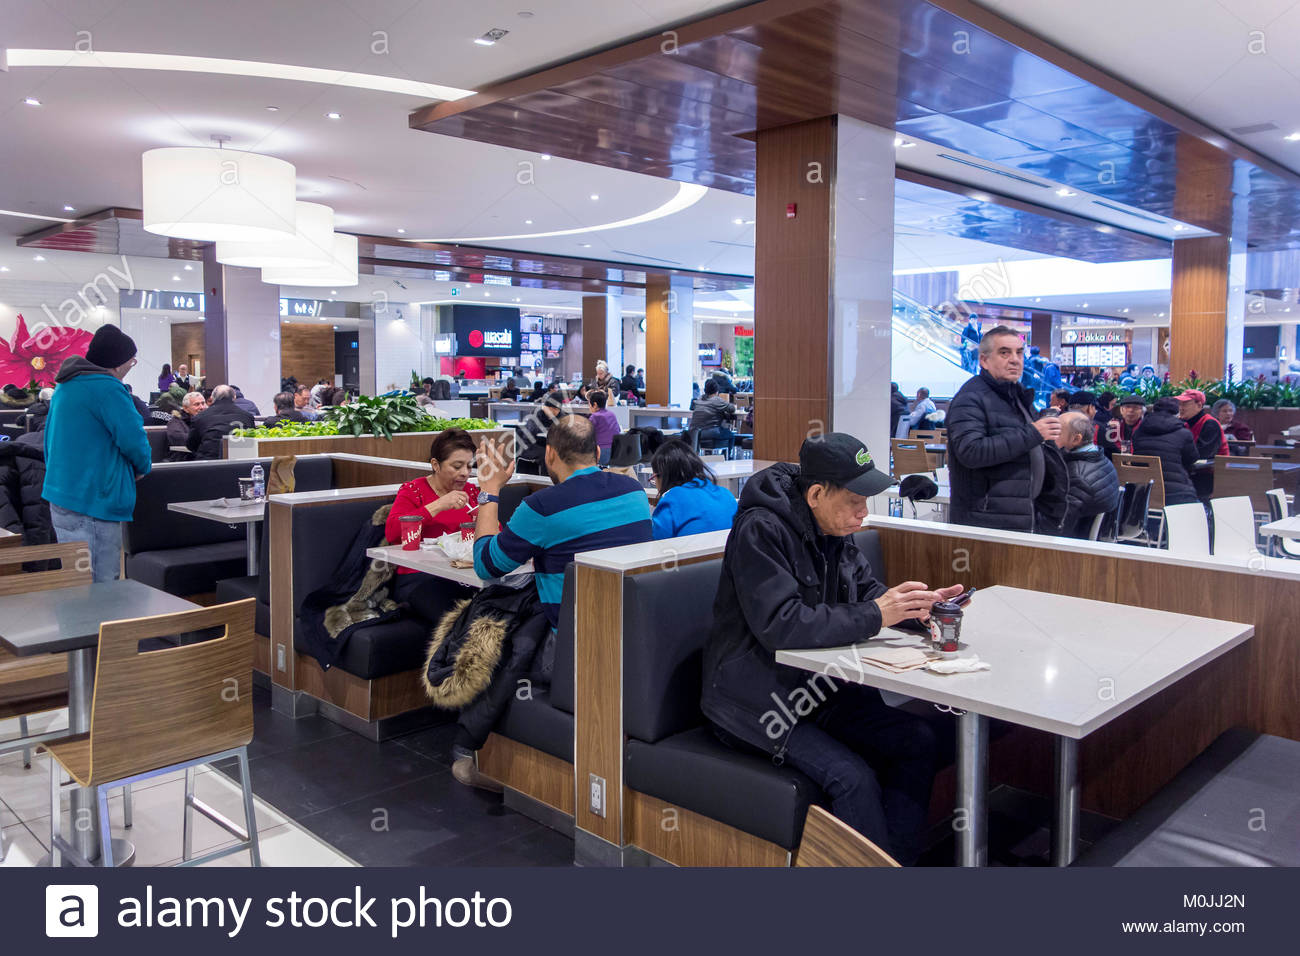 Food court restaurants at the Scarborough Town Centre mall Toronto Ontario Canada - Stock Image